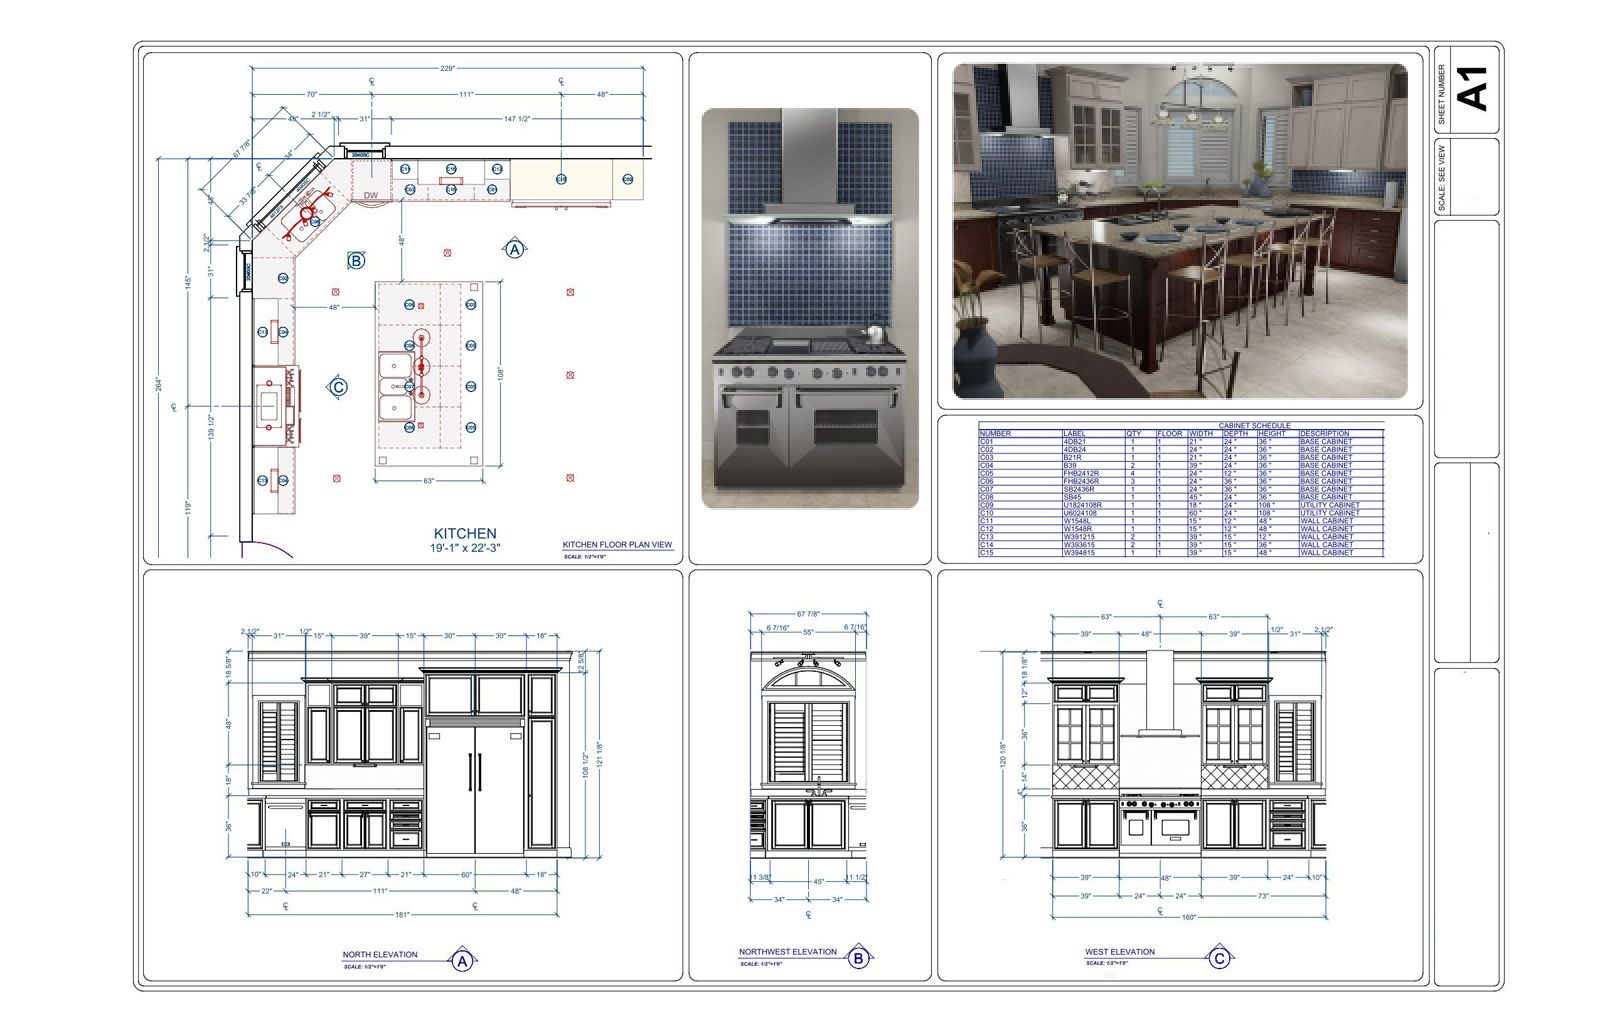 Kitchen design restaurant layout - Mega Villa Plans Clubhouse Plan Pictures Apartments Sample Giesendesign Floor Plan Software Home Design Pinterest Kitchen Floor Plans Kitchen Floors